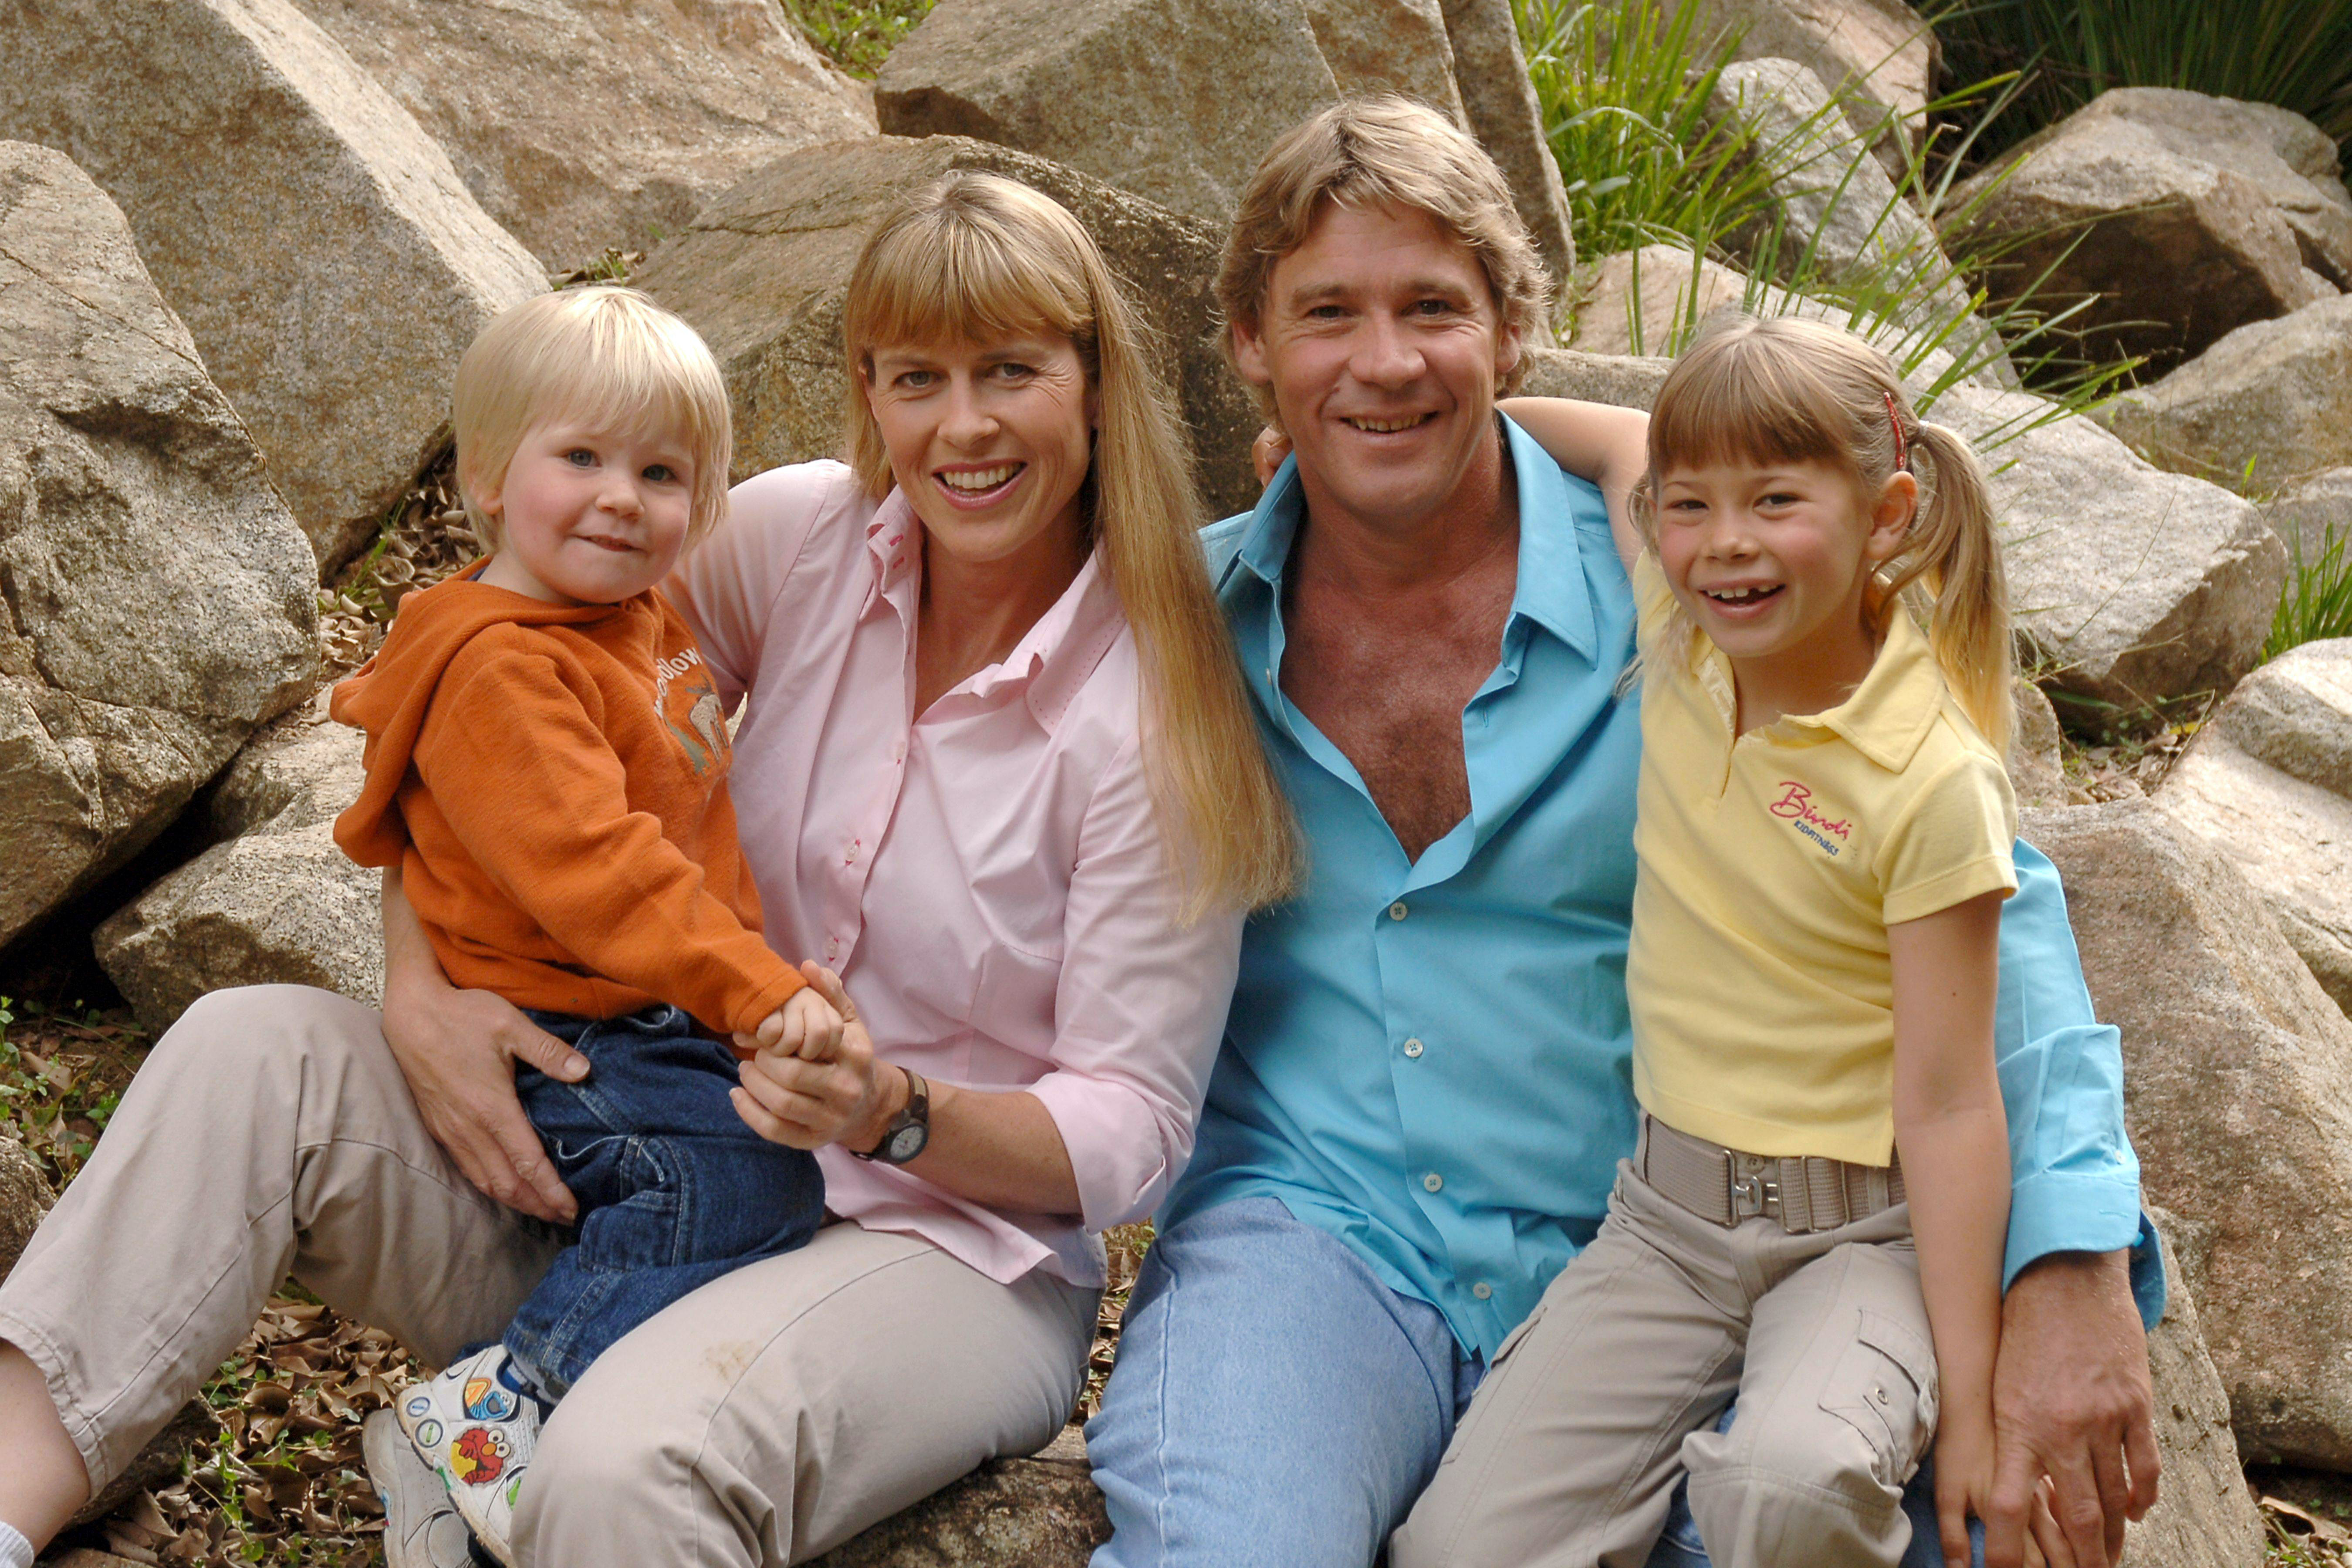 Steve Irwin poses with his family at Australia Zoo June 19, 2006 in Beerwah, Australia. (Photo by Australia Zoo via Getty Images)